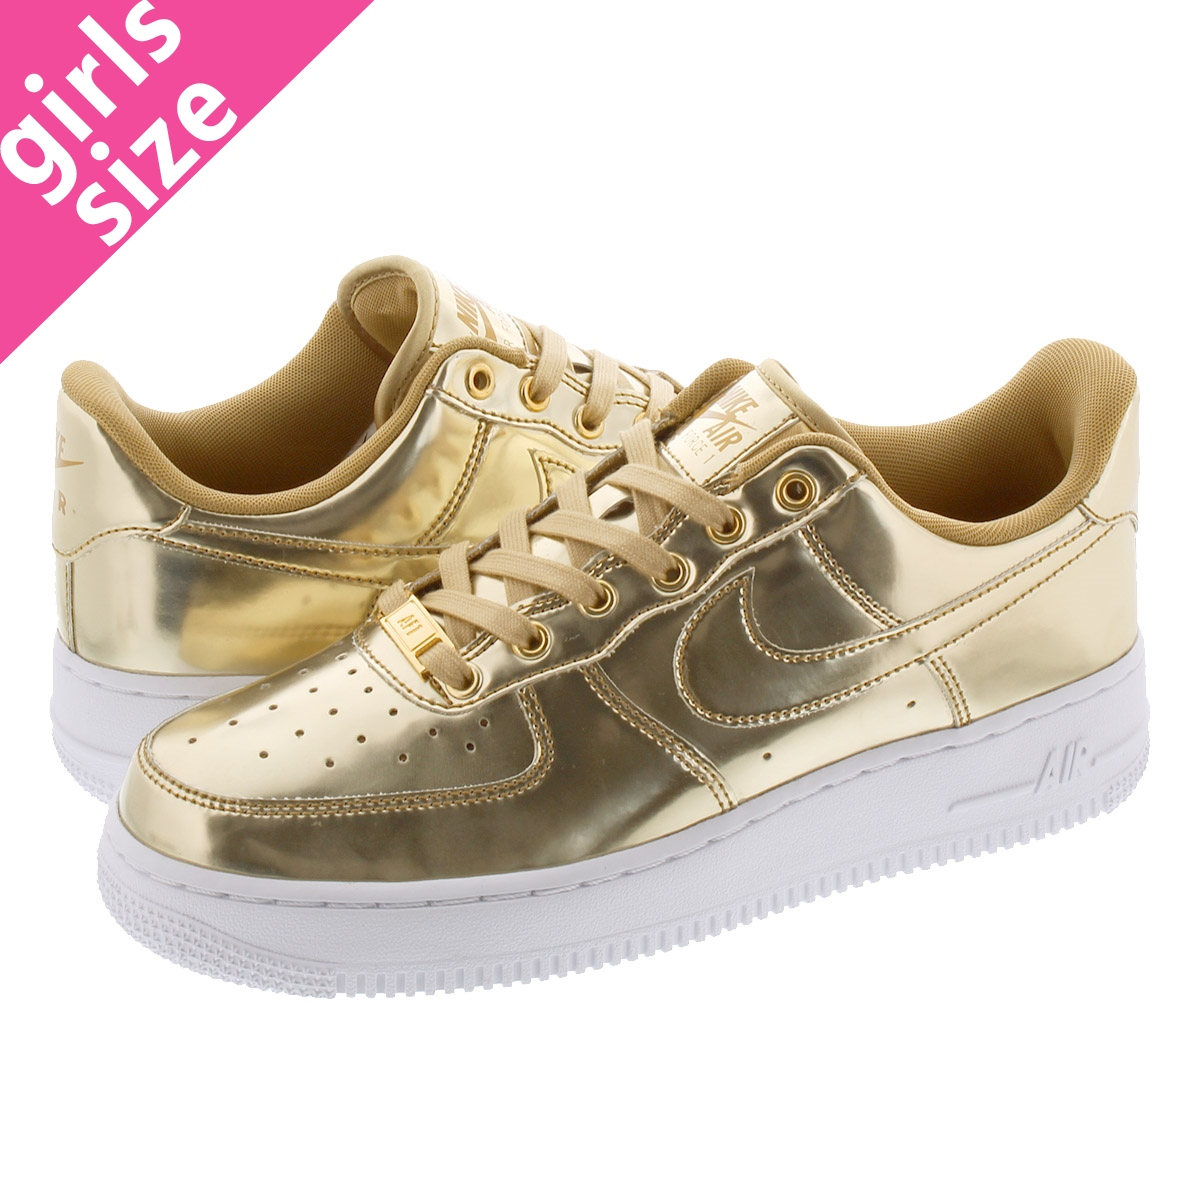 NIKE WMNS AIR FORCE 1 SP ナイキ ウィメンズ エアフォース 1 SP METALLIC GOLD/CLUB GOLD/WHITE cq6566-700